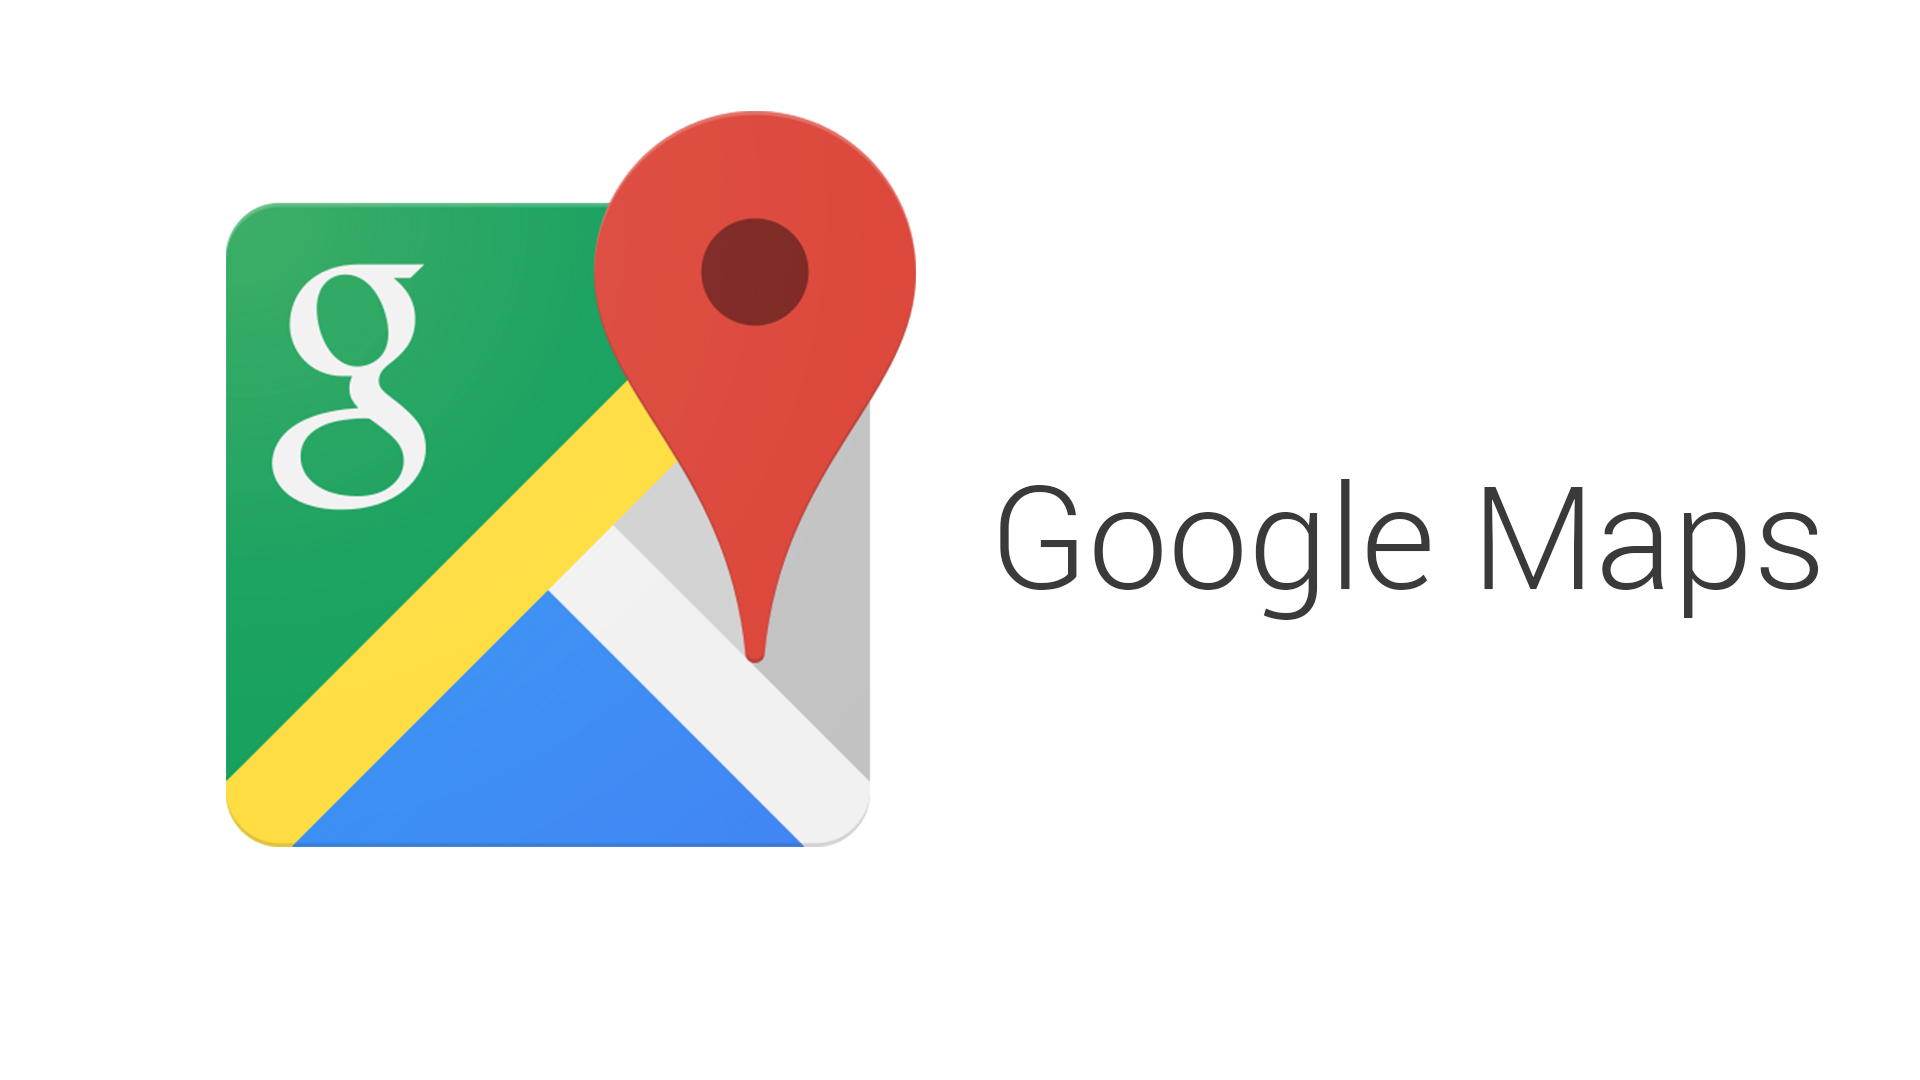 Google Maps App for iOS has been updated with these features